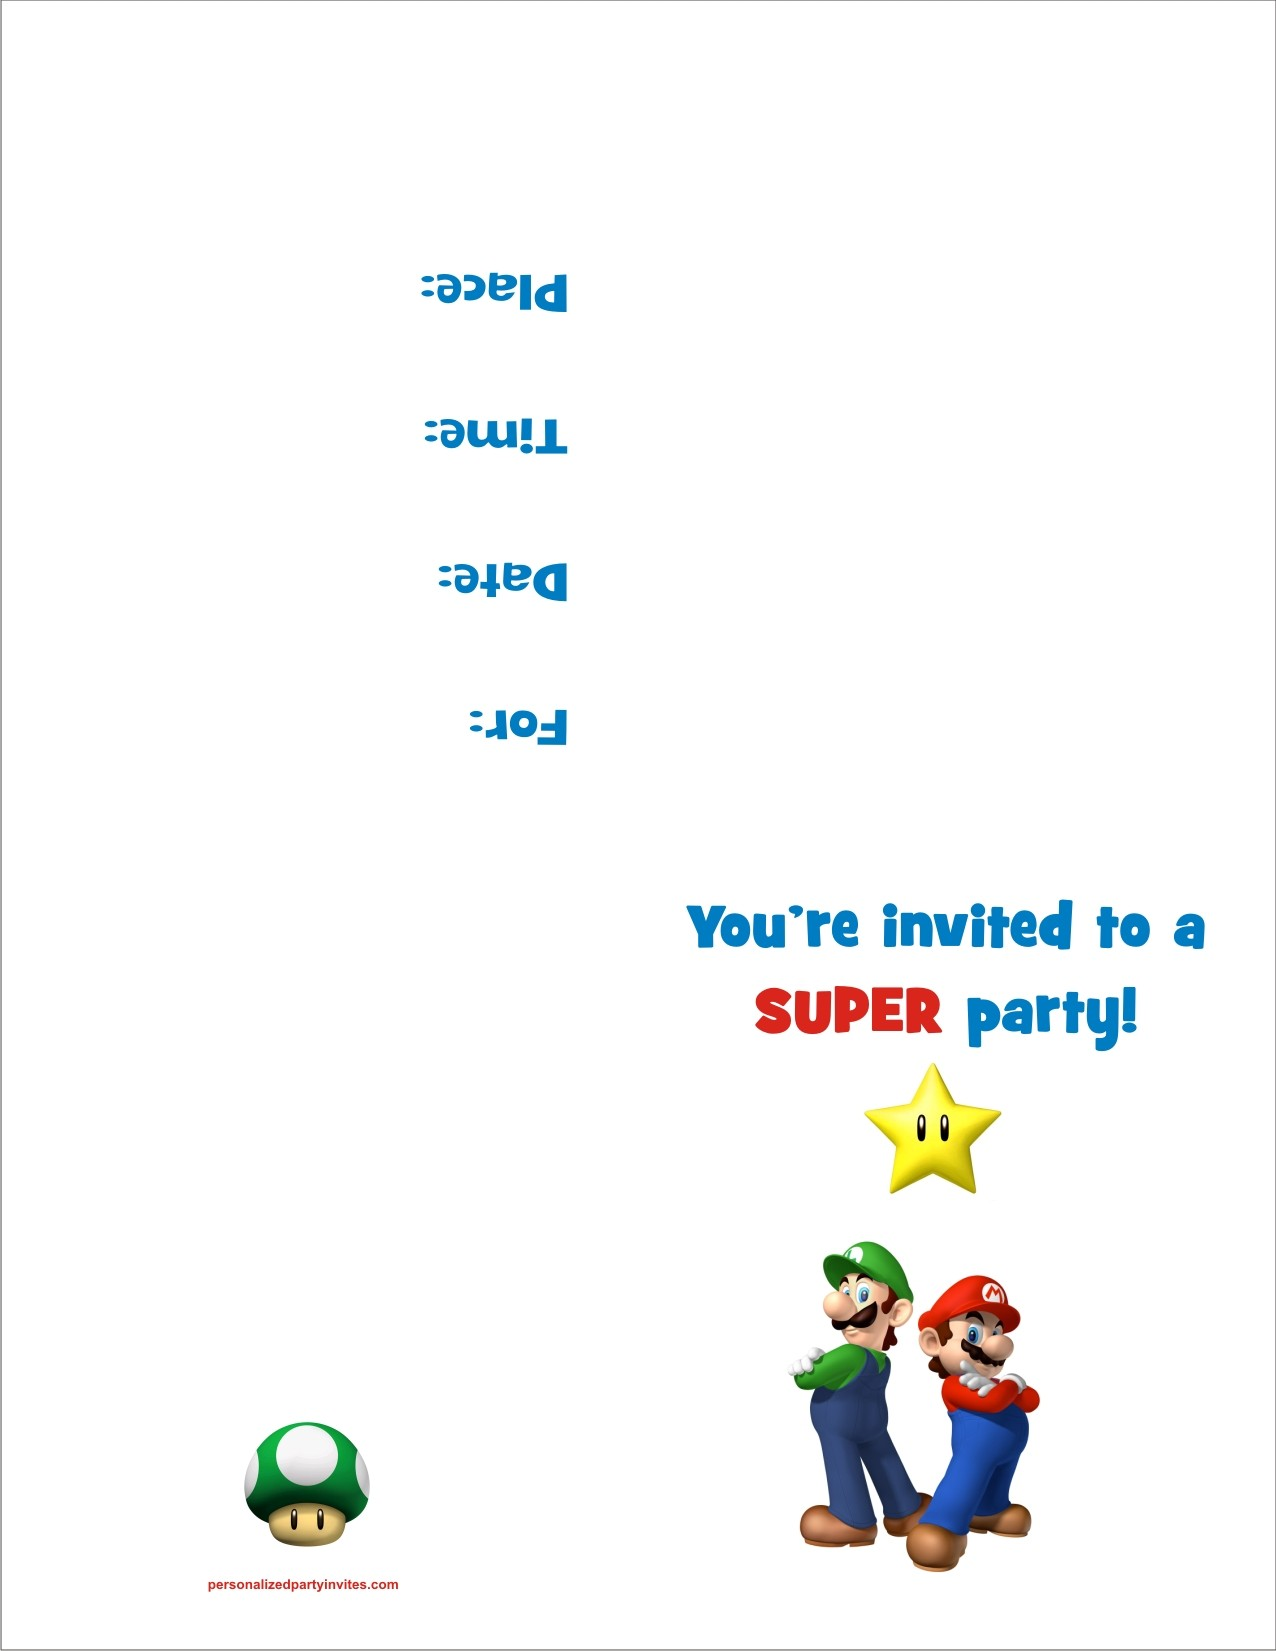 Super mario bros free printable birthday party invitation super mario bros free printable birthday party invitation filmwisefo Images